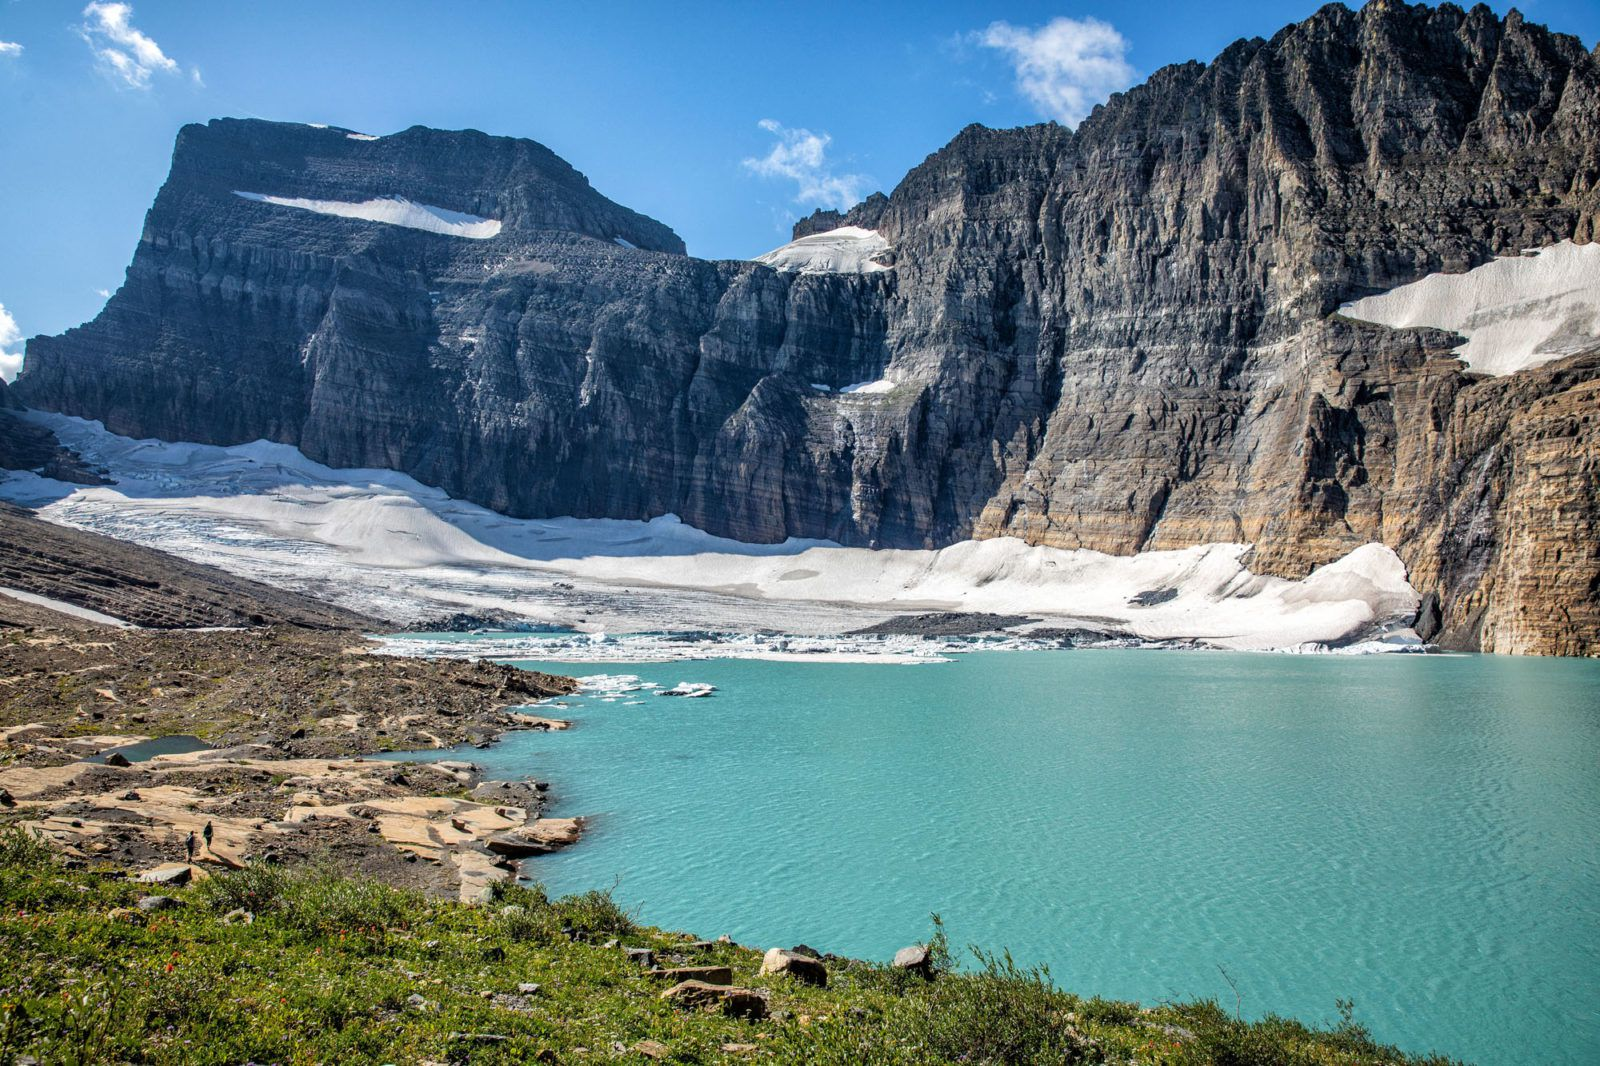 Grinnell Glacier Hiking Guide